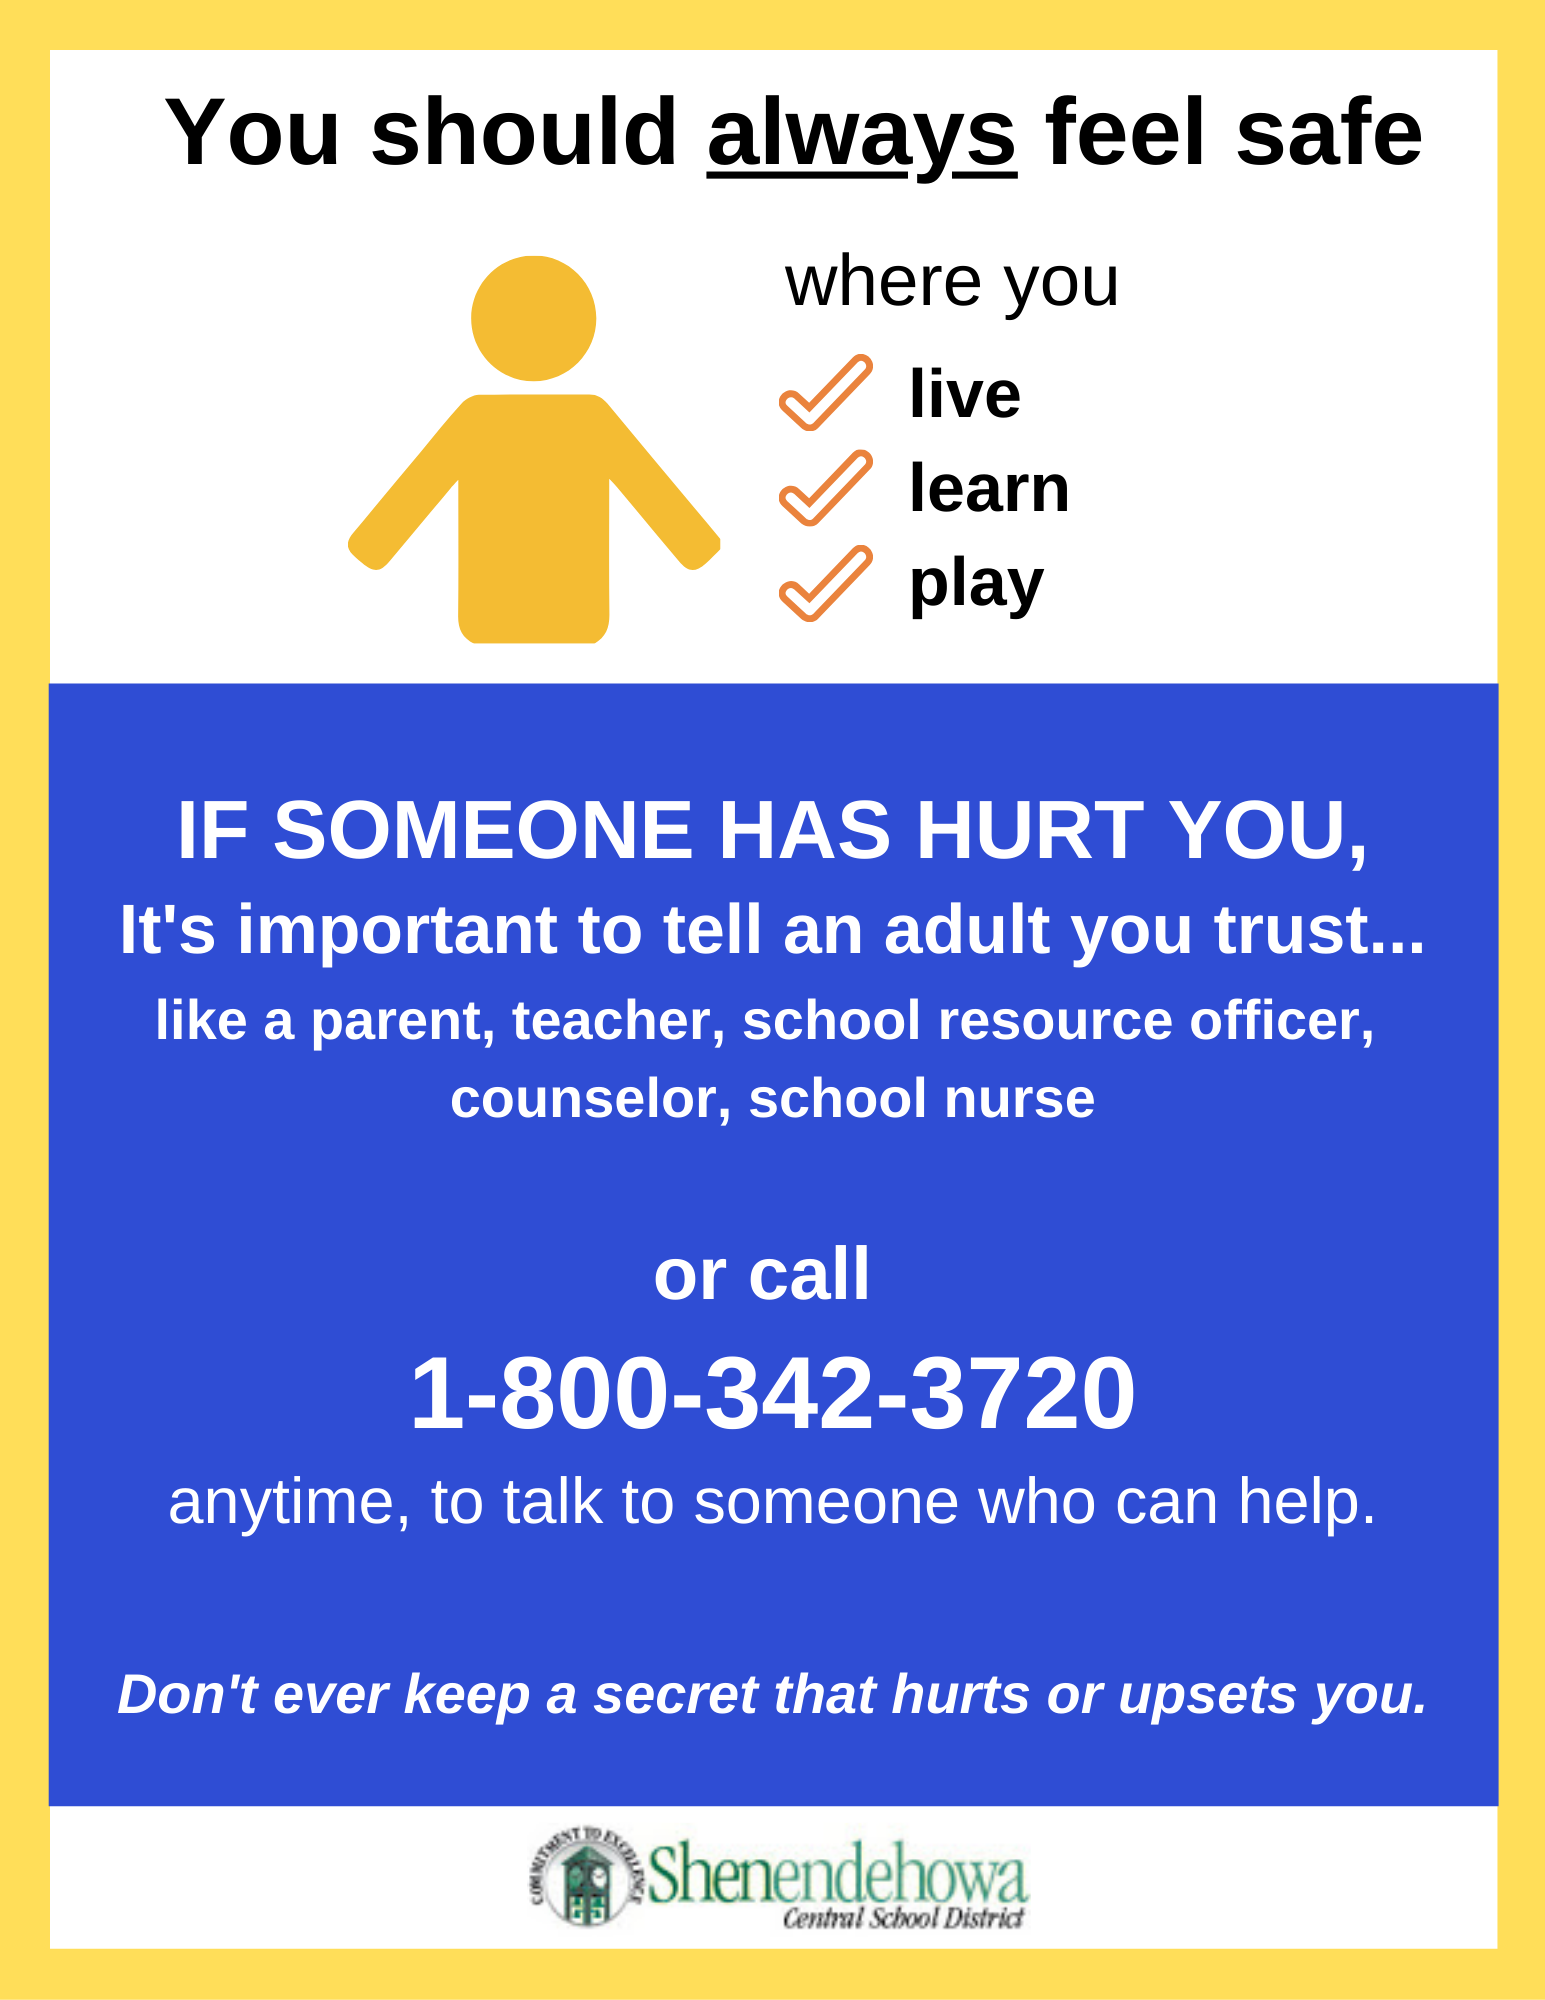 Shenendehowa supports the continuation of advocacy for children's safety. If you have a concern about the welfare of a child please call the number on this flyer.